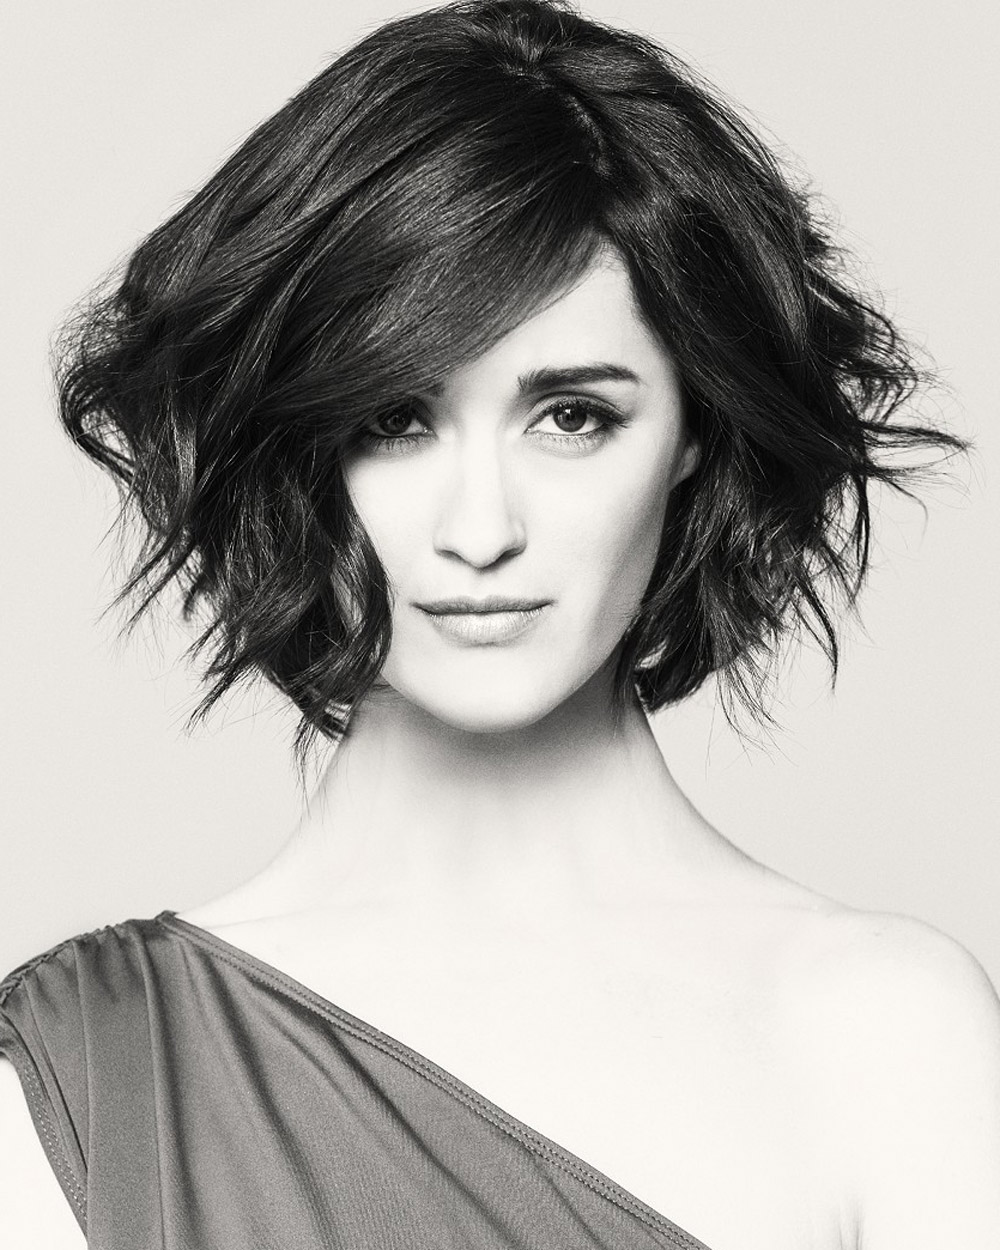 Wavy bob (Mary Brunetti – Ready to Wear, nové kolekce Intercoiffure America/Canada od Mary Brunetti, vlasy: Mary Brunetti, foto: Babak, make-up: Ilise Harris)